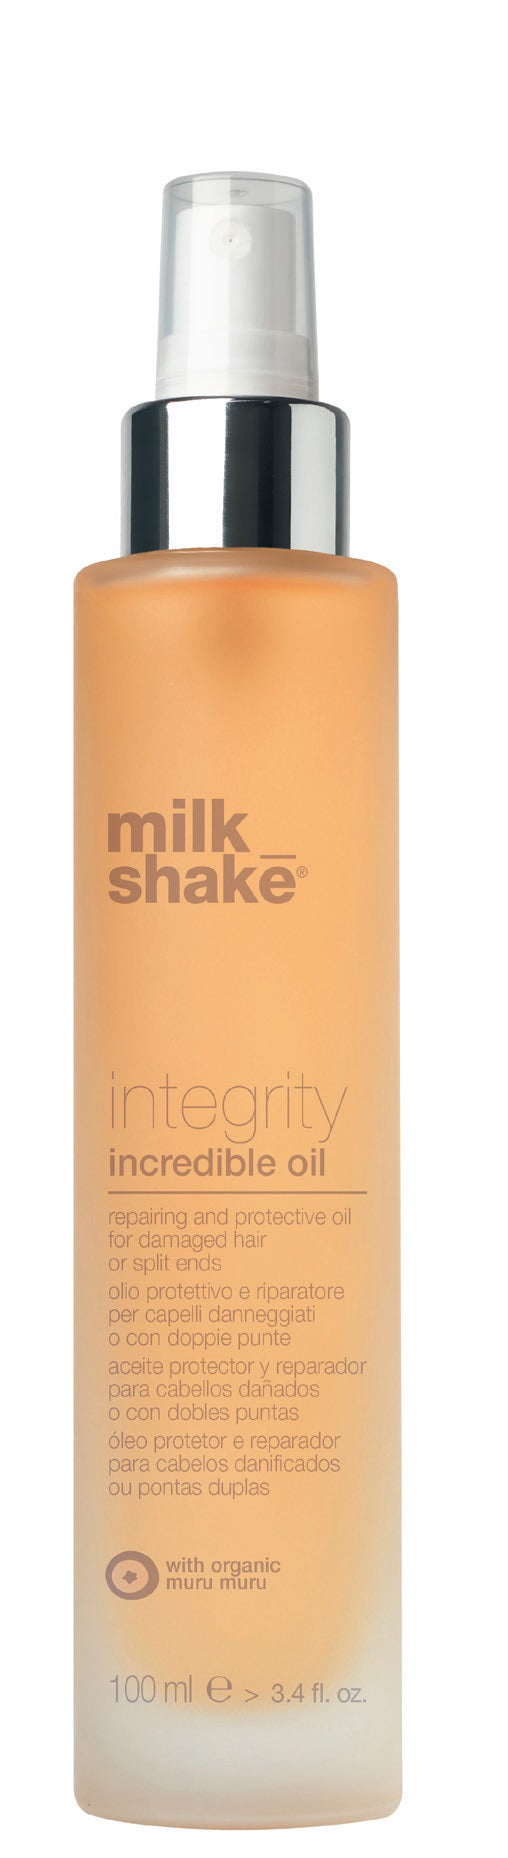 MILK_SHAKE INTEGRITY INCREDIBLE OIL 100 ML